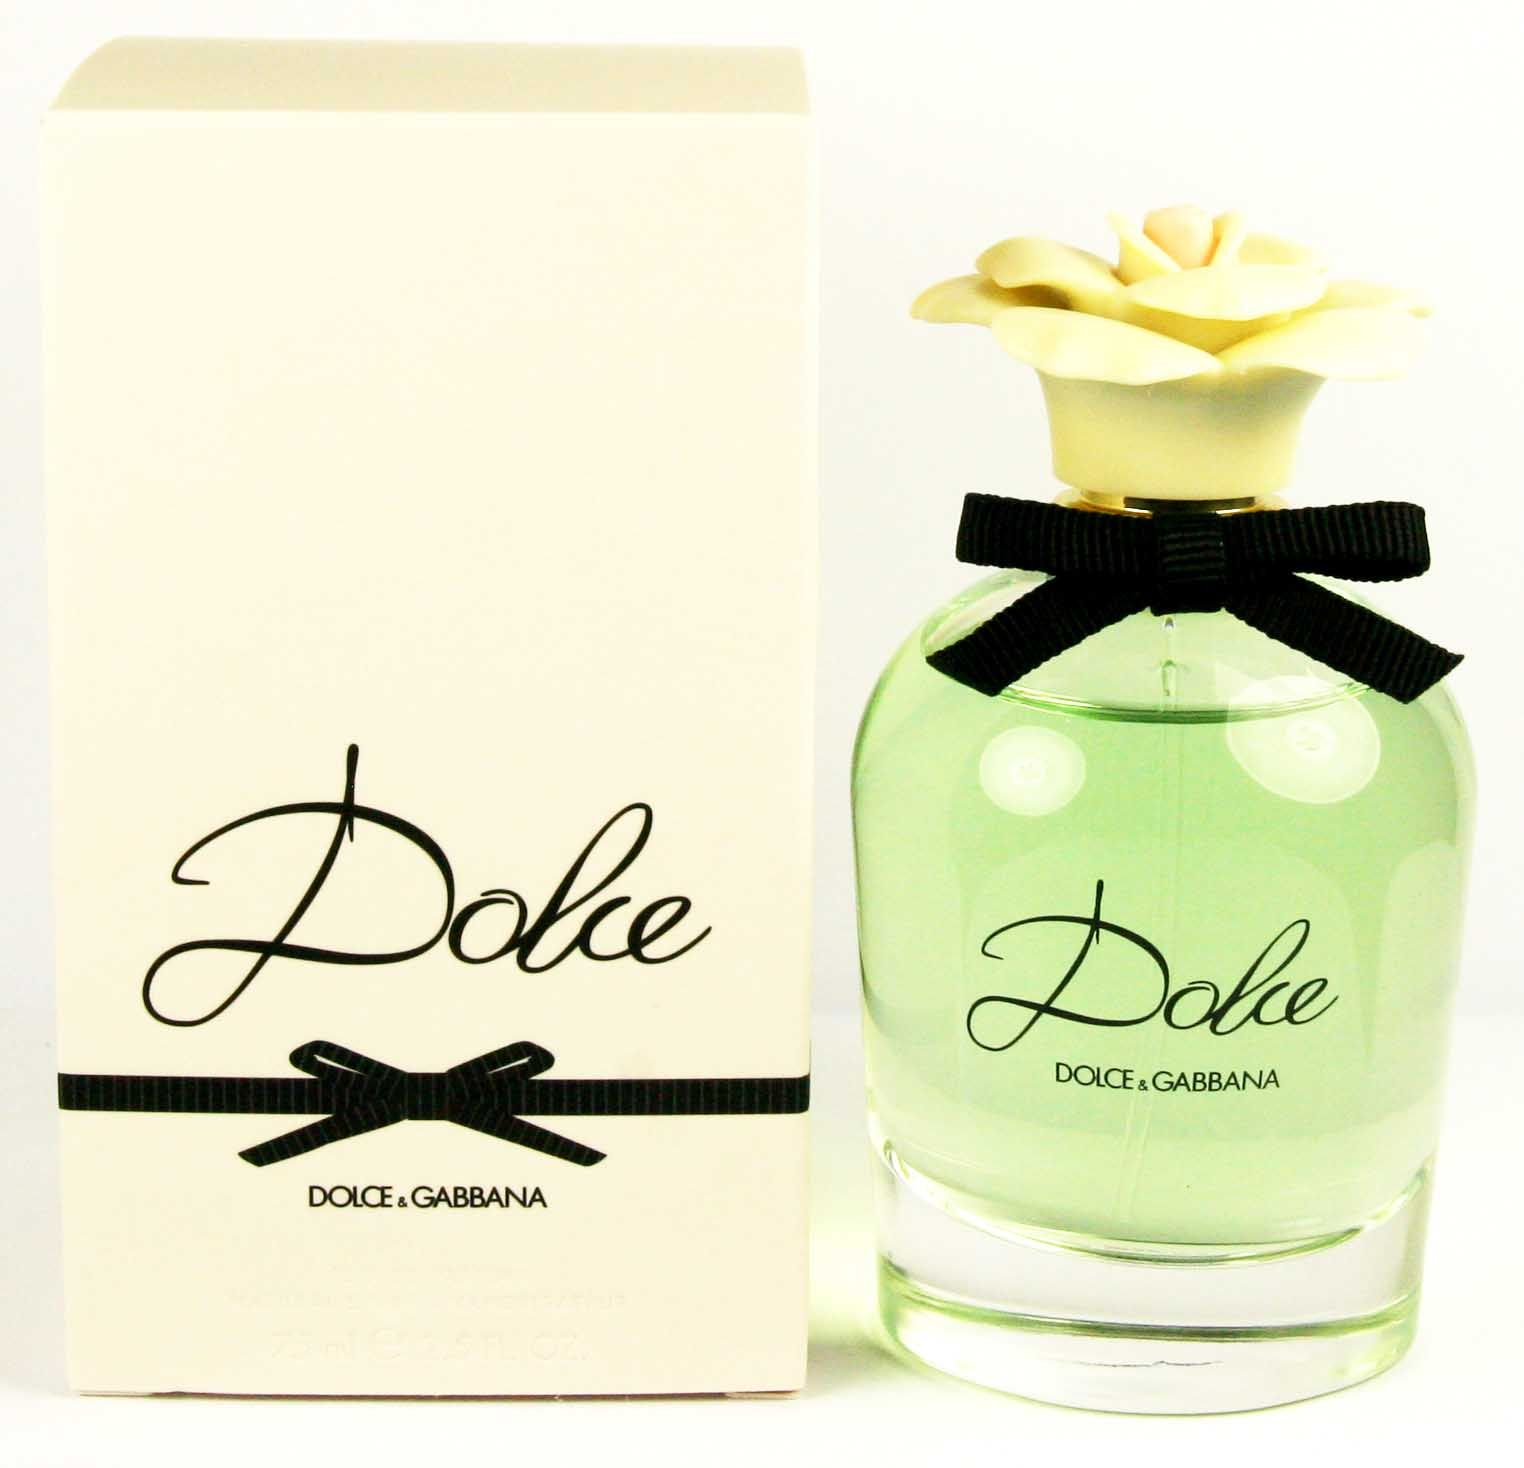 It Is Described As A Soft And Feminine Scent Of White Flowers